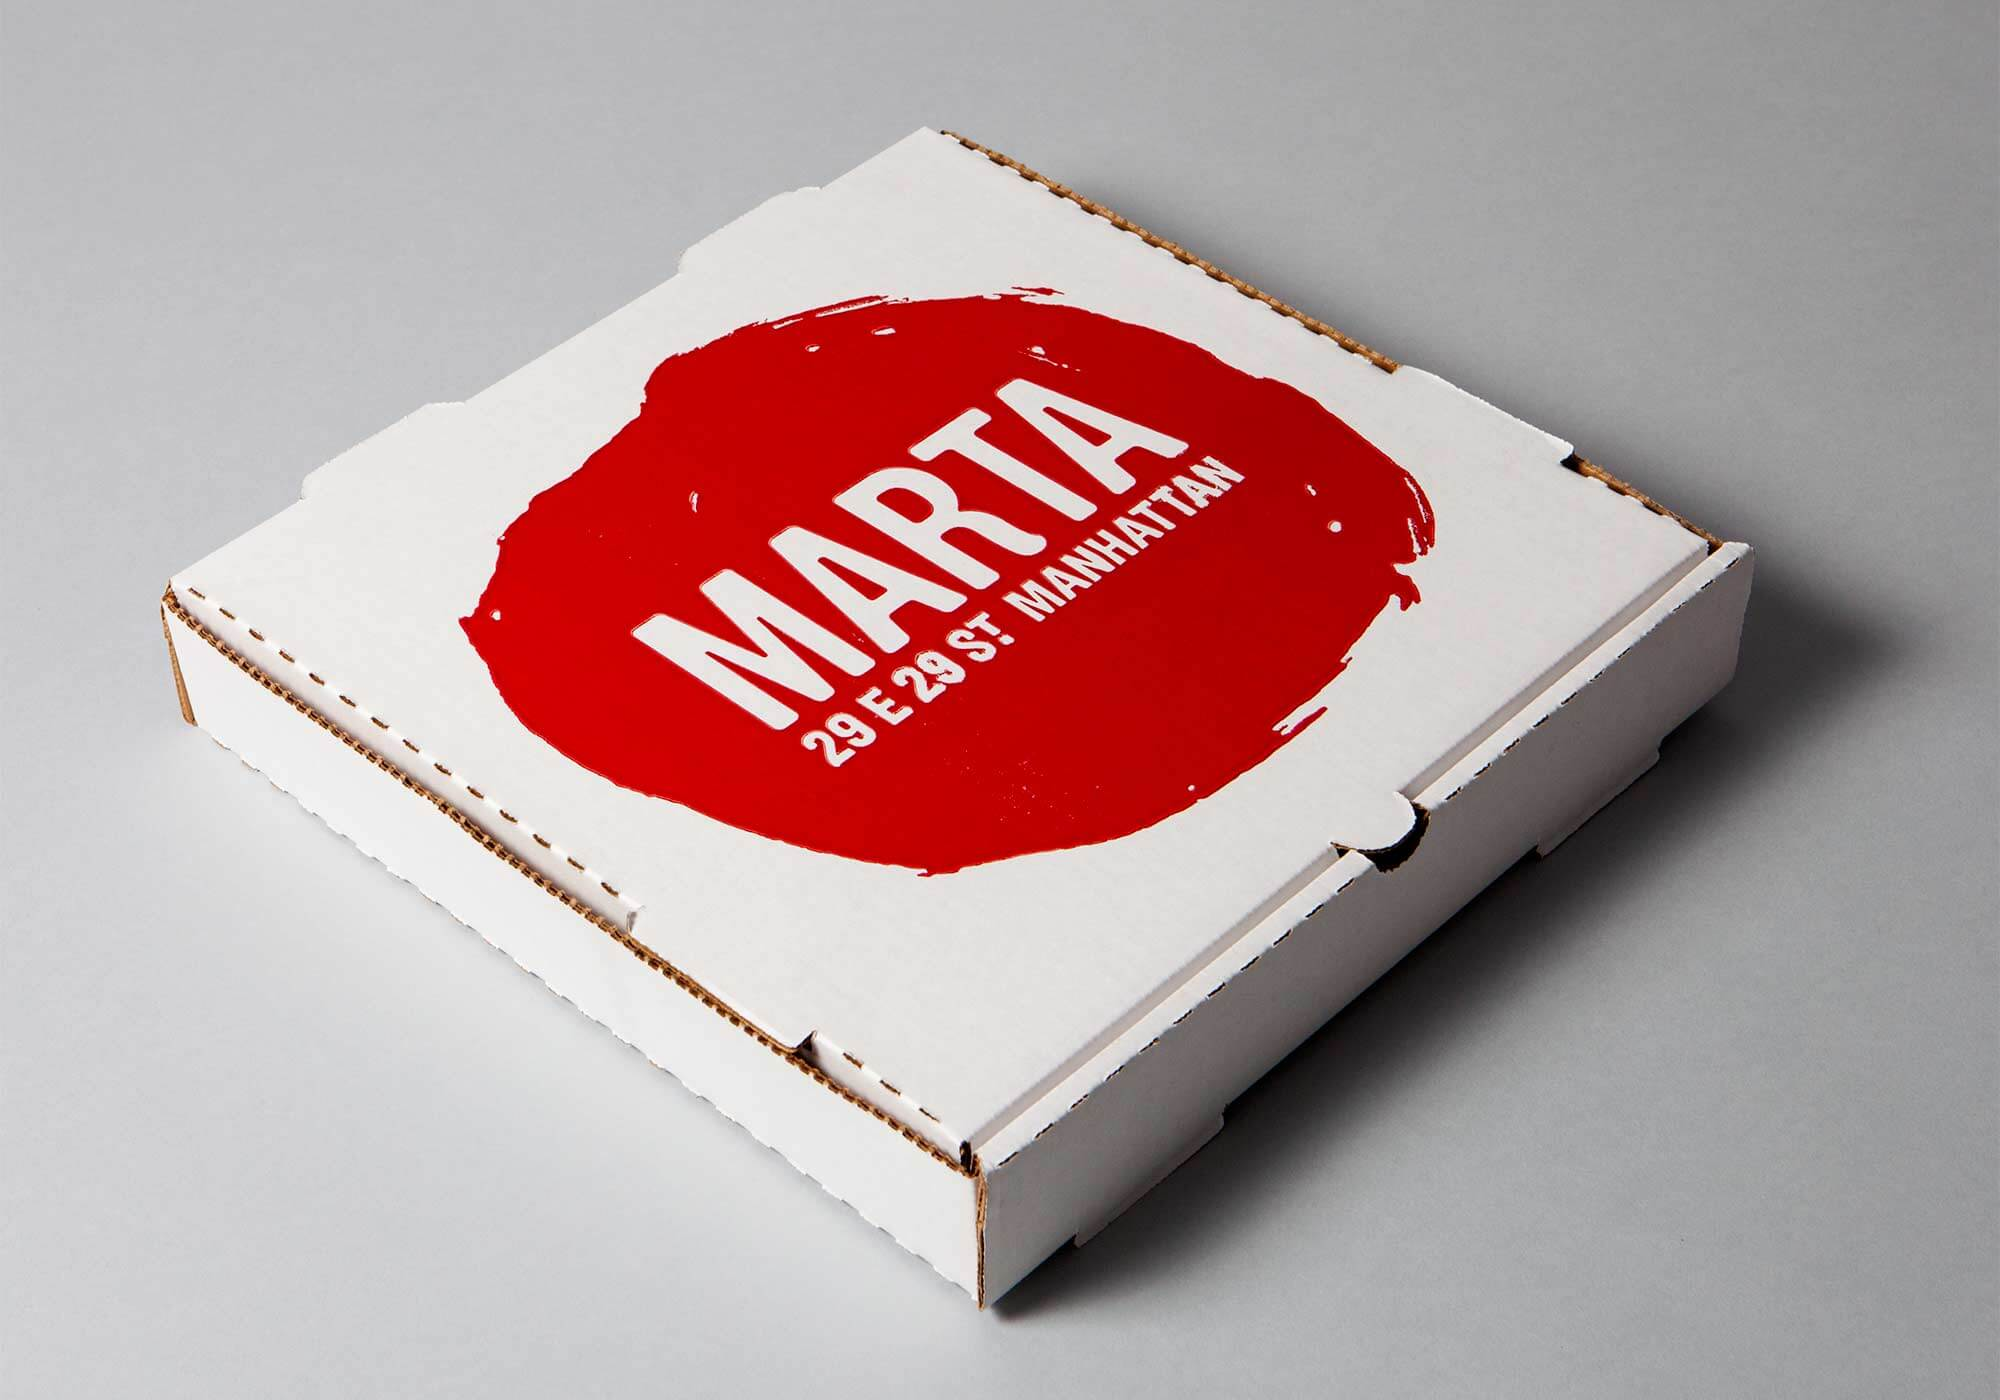 marta-pizzabox-1-2000x1400